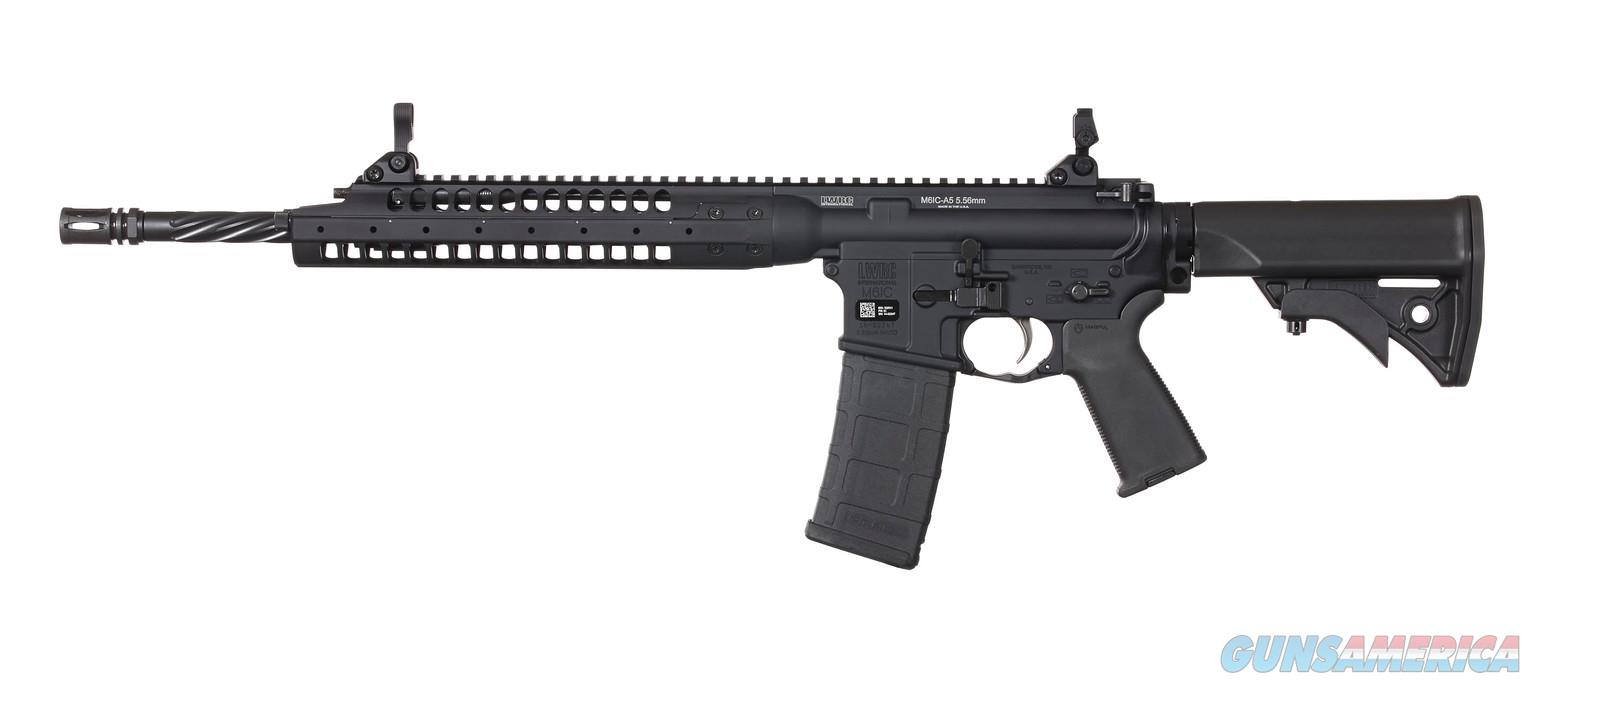 "*CA COMPLIANT* LWRC IC A5 16"" BLK  Guns > Rifles > AR-15 Rifles - Small Manufacturers > Complete Rifle"